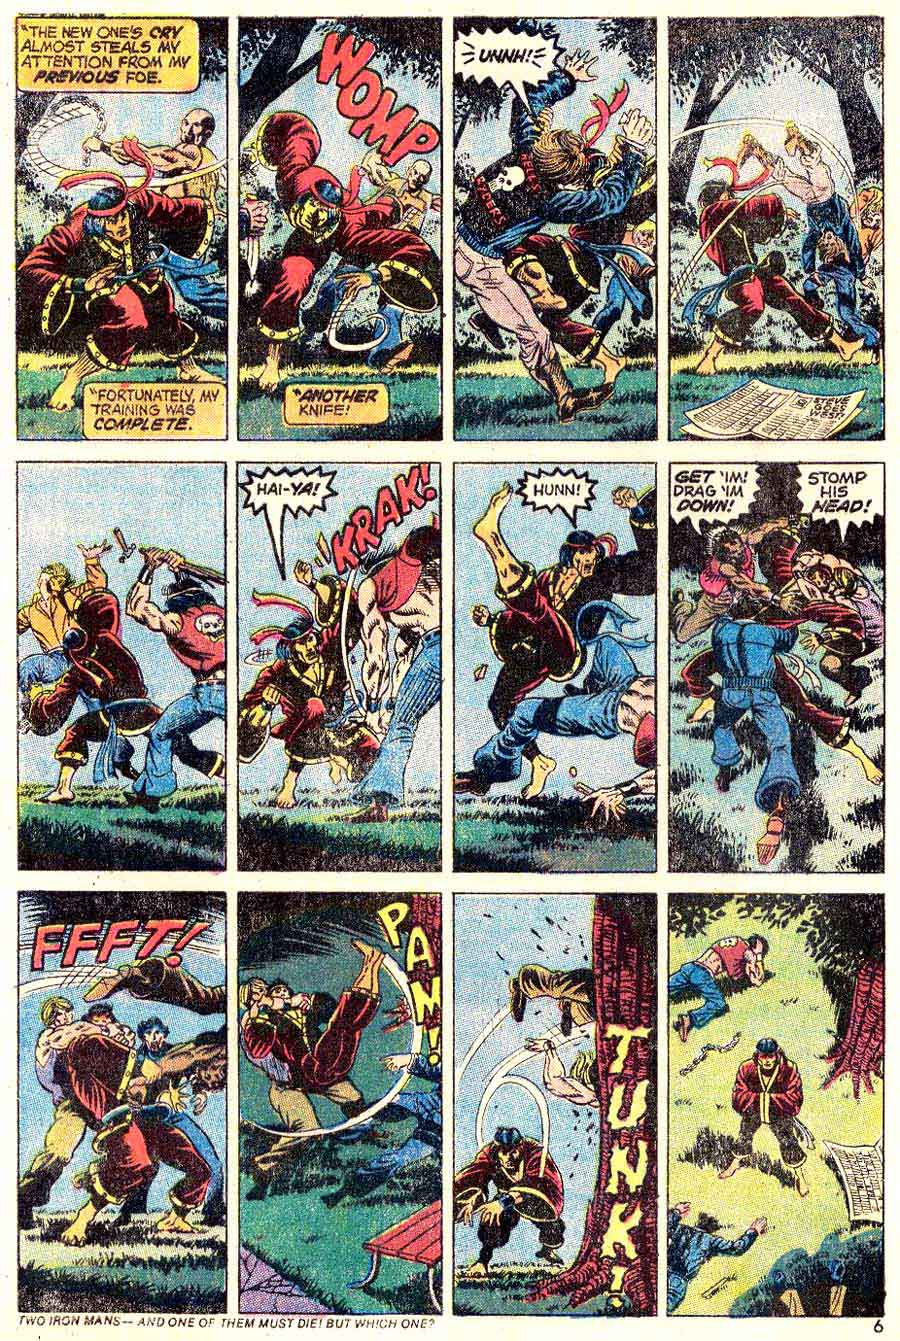 Special Marvel Edition v1 #16 marvel 1970s bronze age comic book page art by Jim Starlin